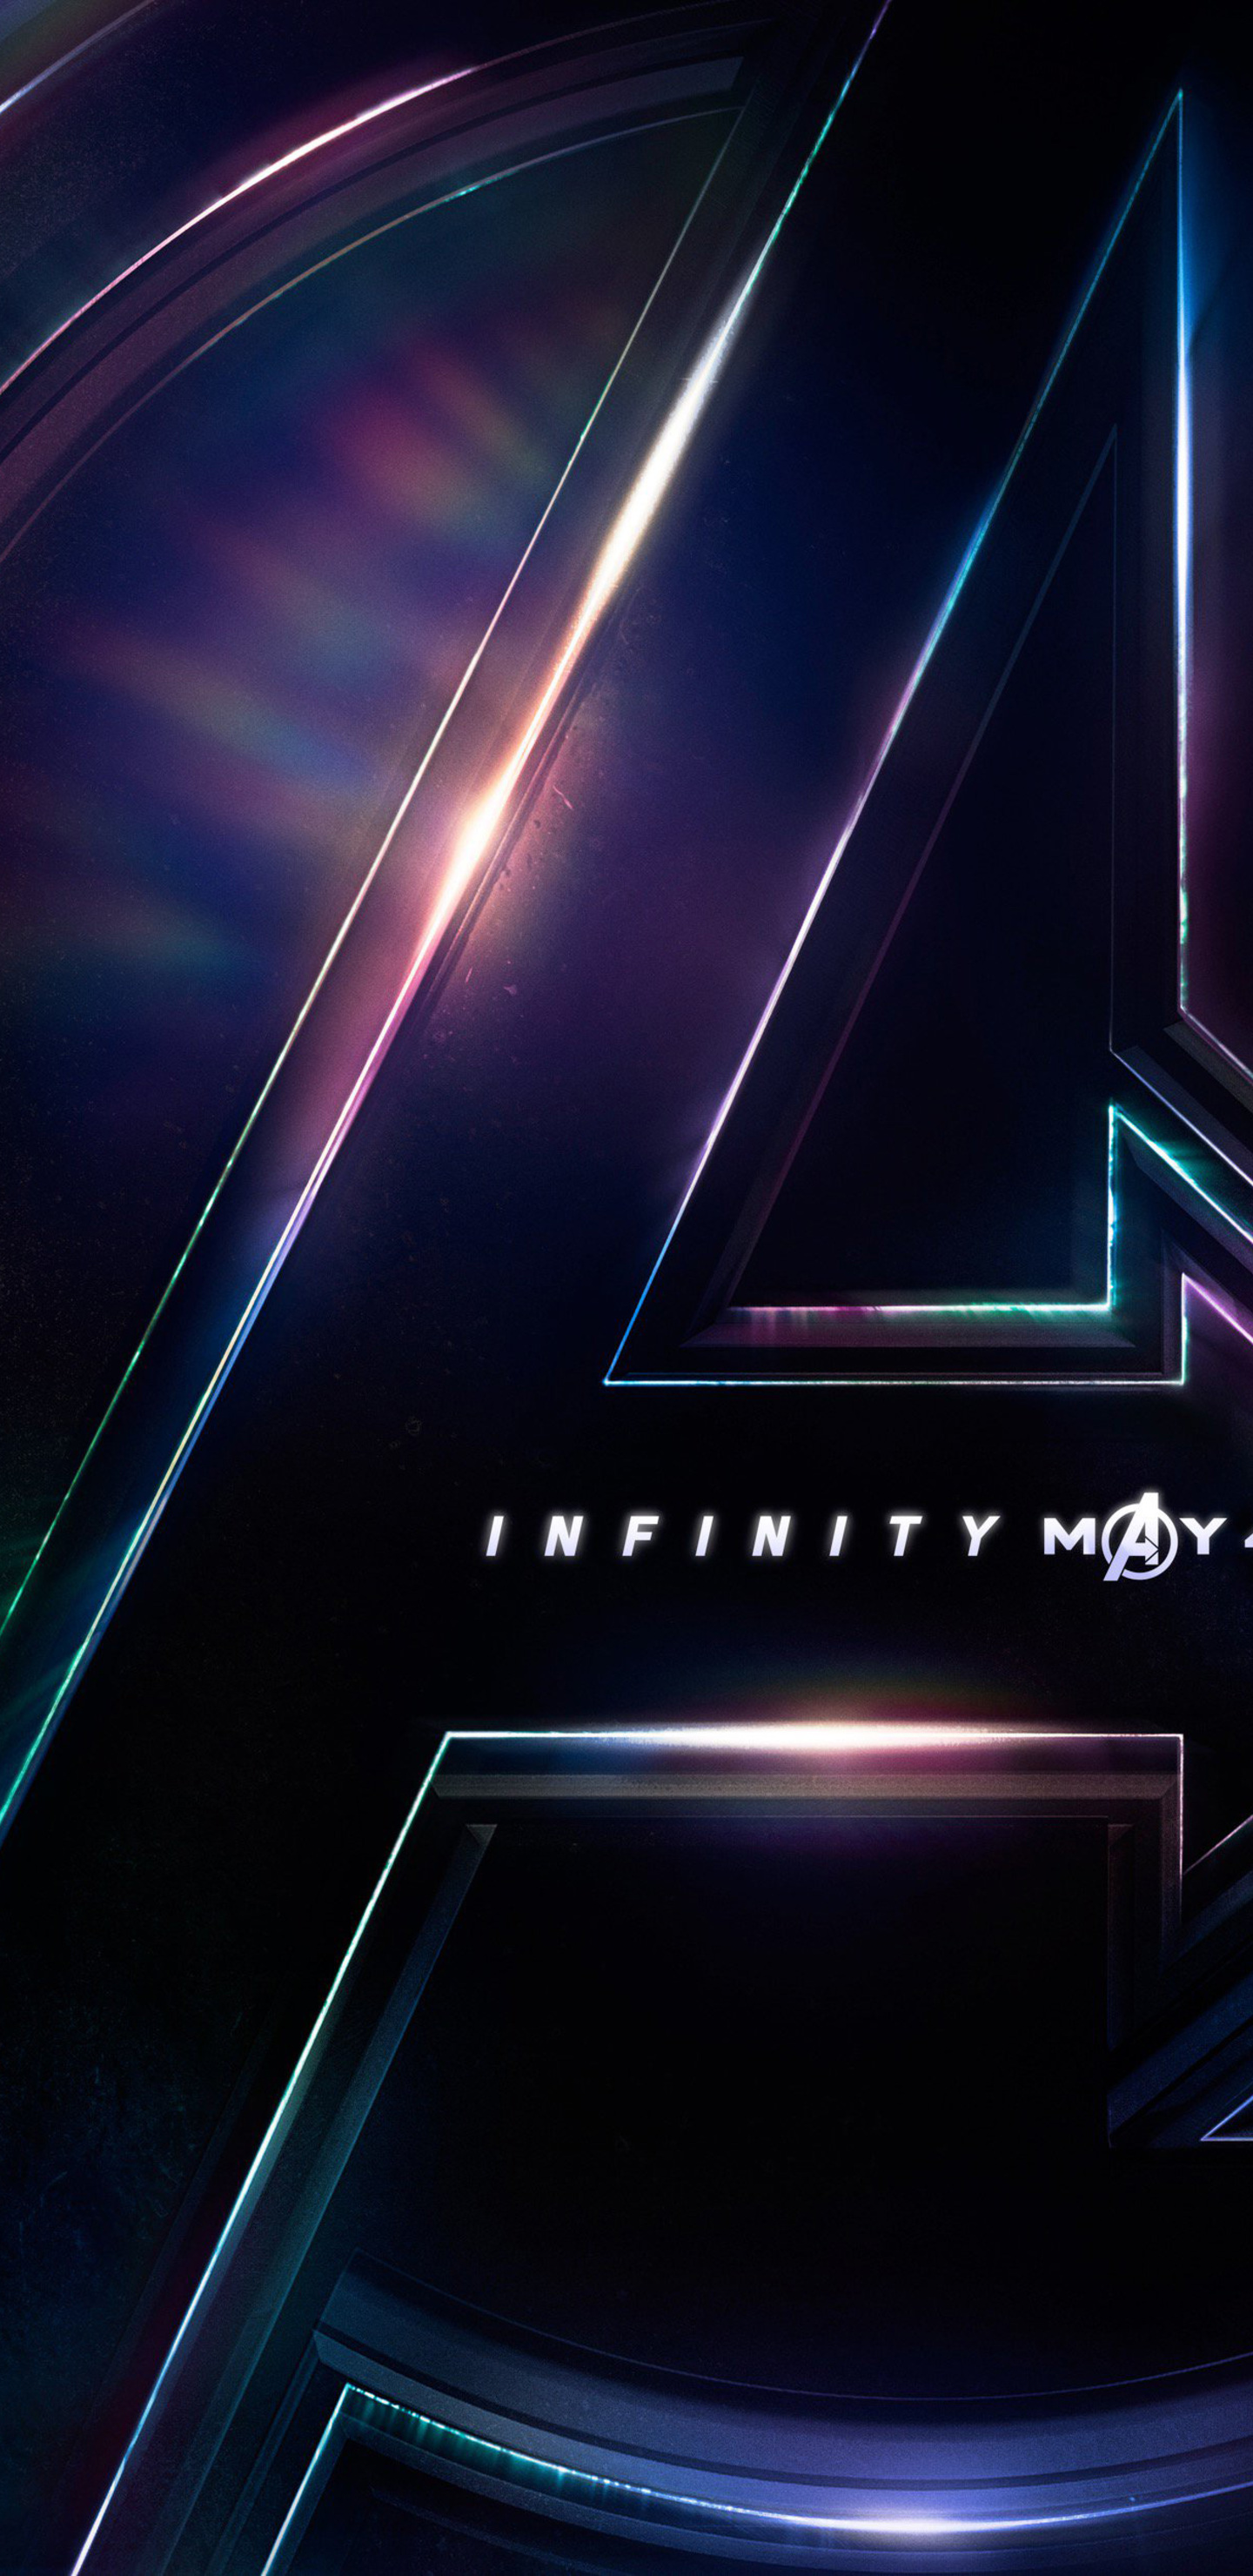 1440x2960 Avengers Infinity War Poster Samsung Galaxy Note 9 8 S9